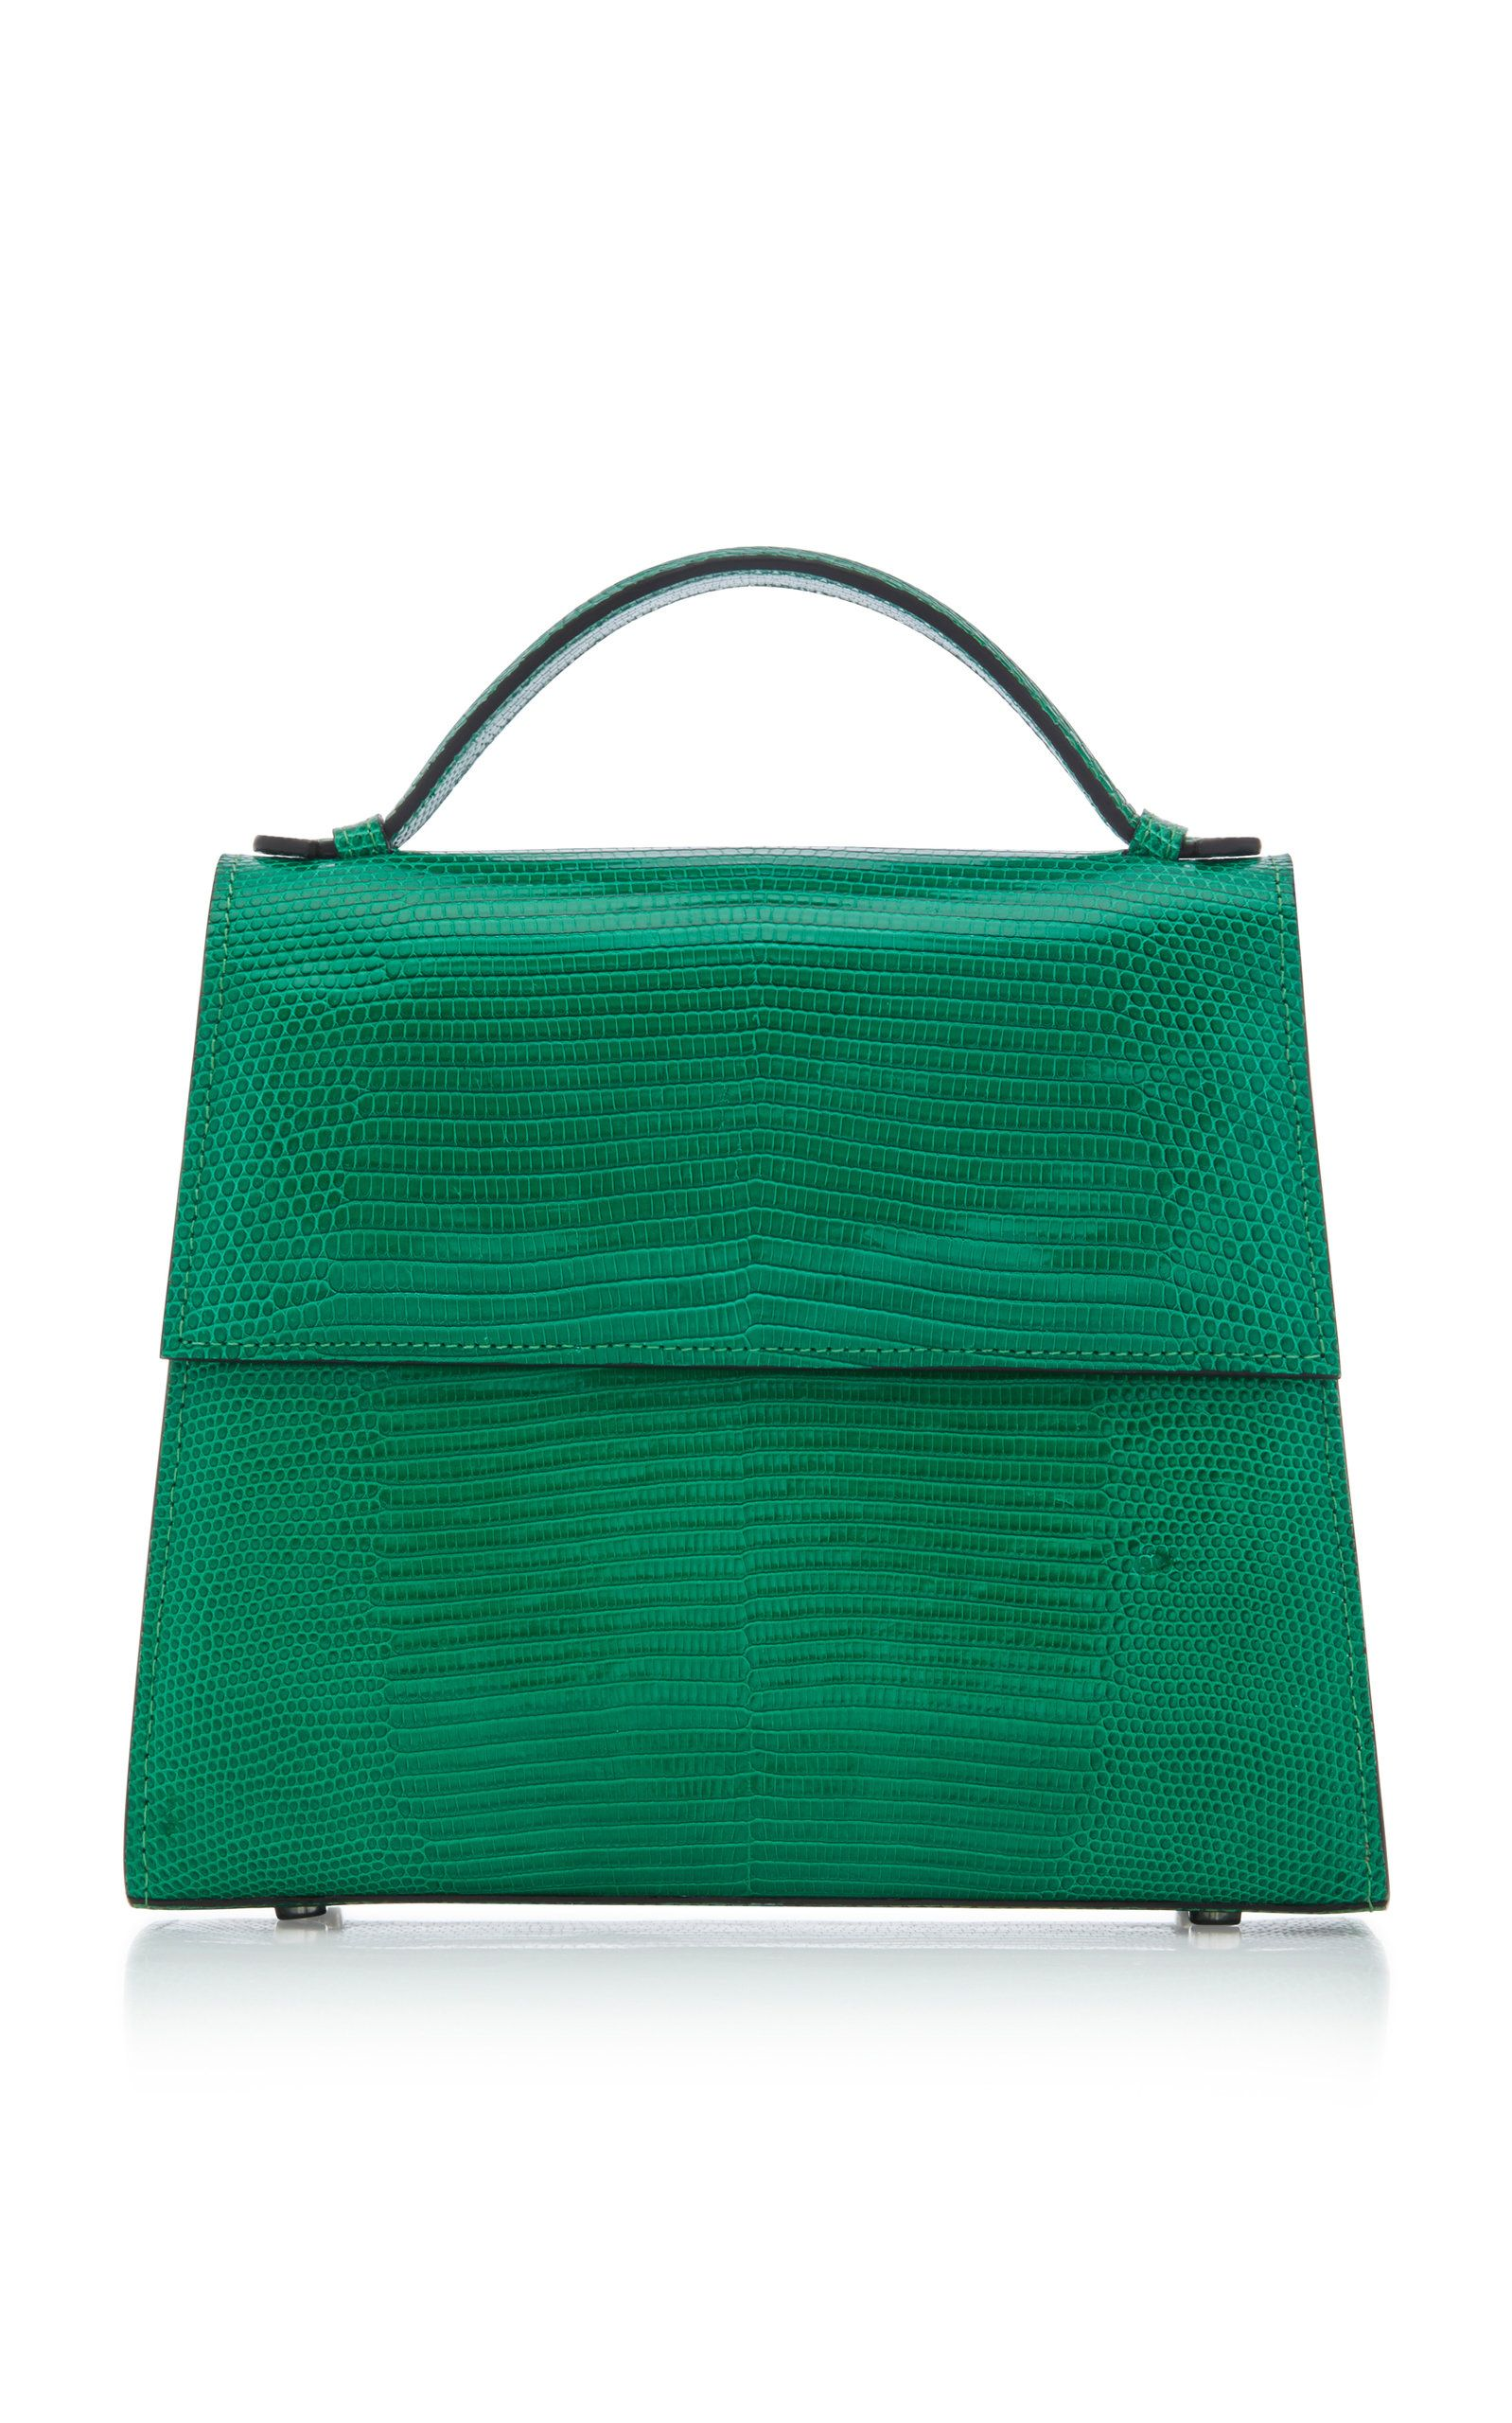 Hunting Season Mini Top Handle Lizard Handbag Green Cad 1 970 Designed With Minimal Lines S Frame Is Made From Textural